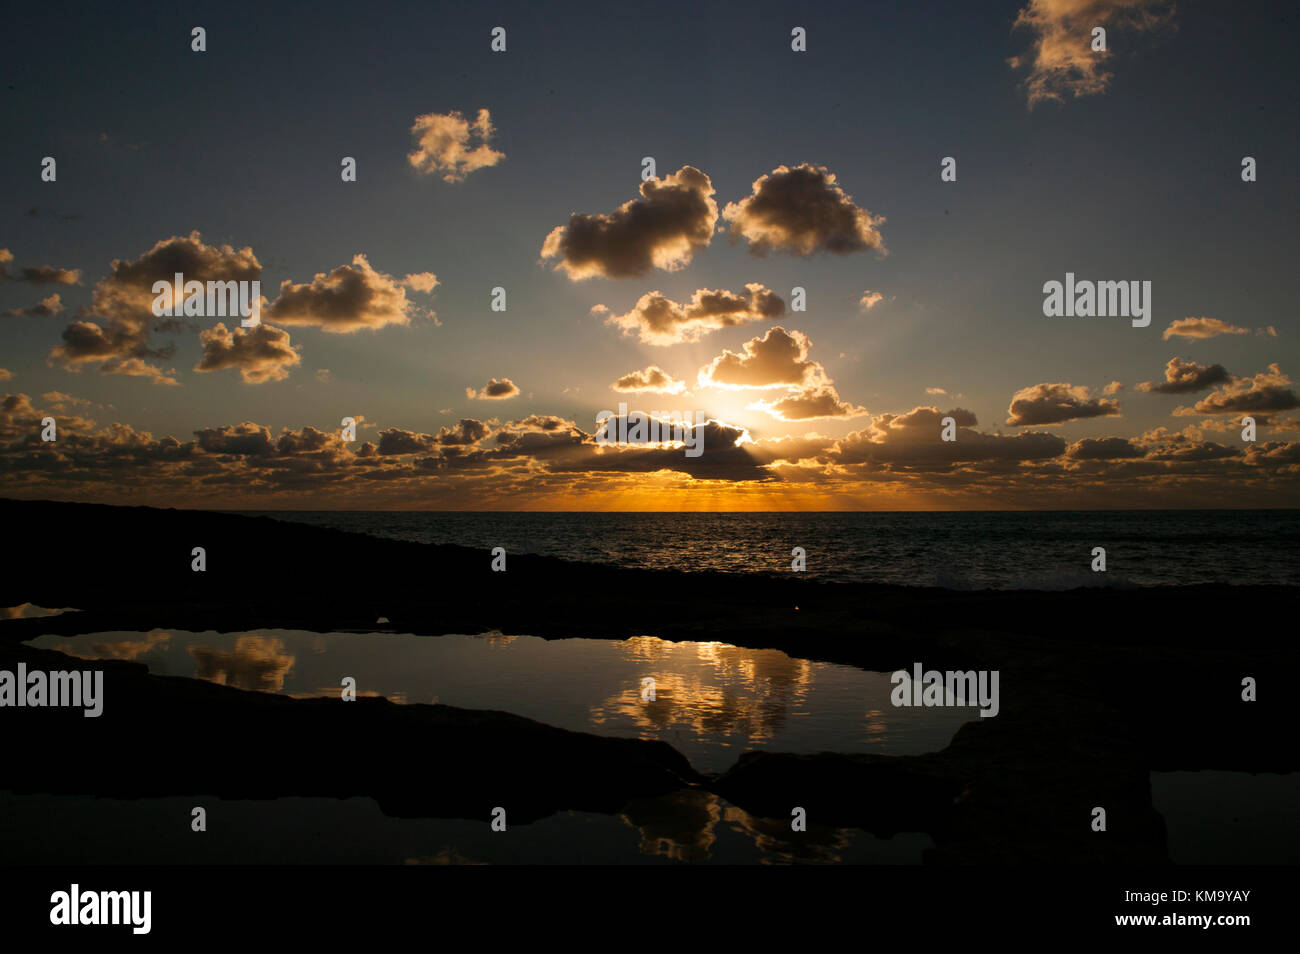 Sunset over the Salt pans - Stock Image